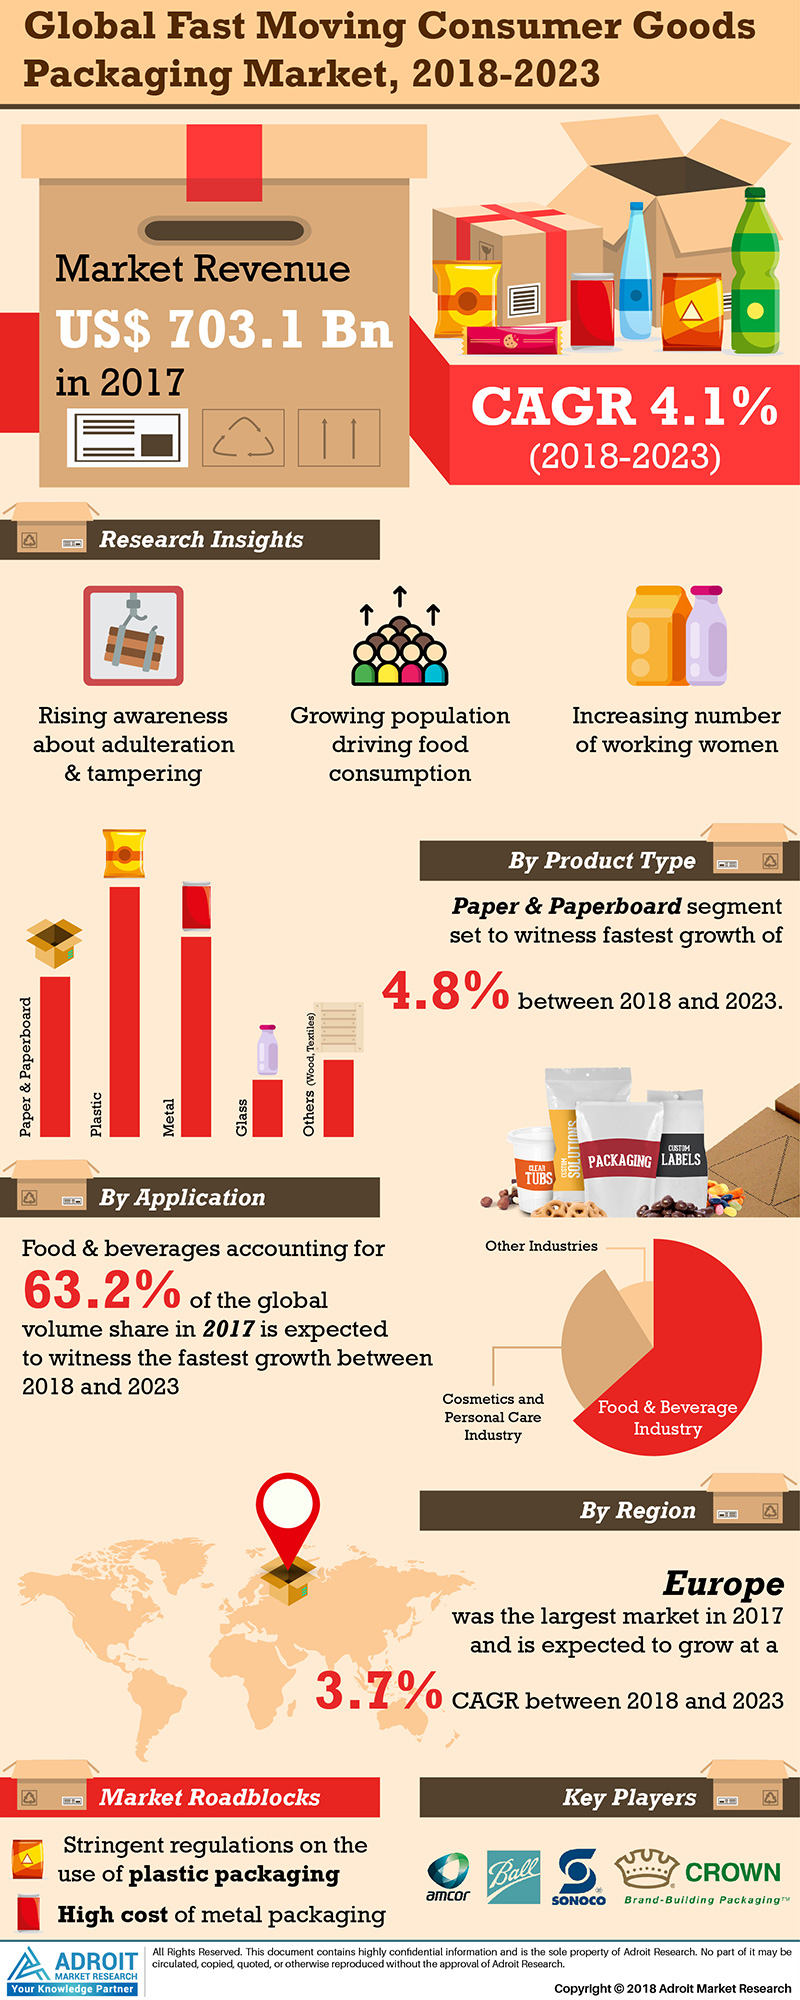 Global FMCG Packaging Market Analysis by Type, End-use, Region and Forecast 2018 to 2023